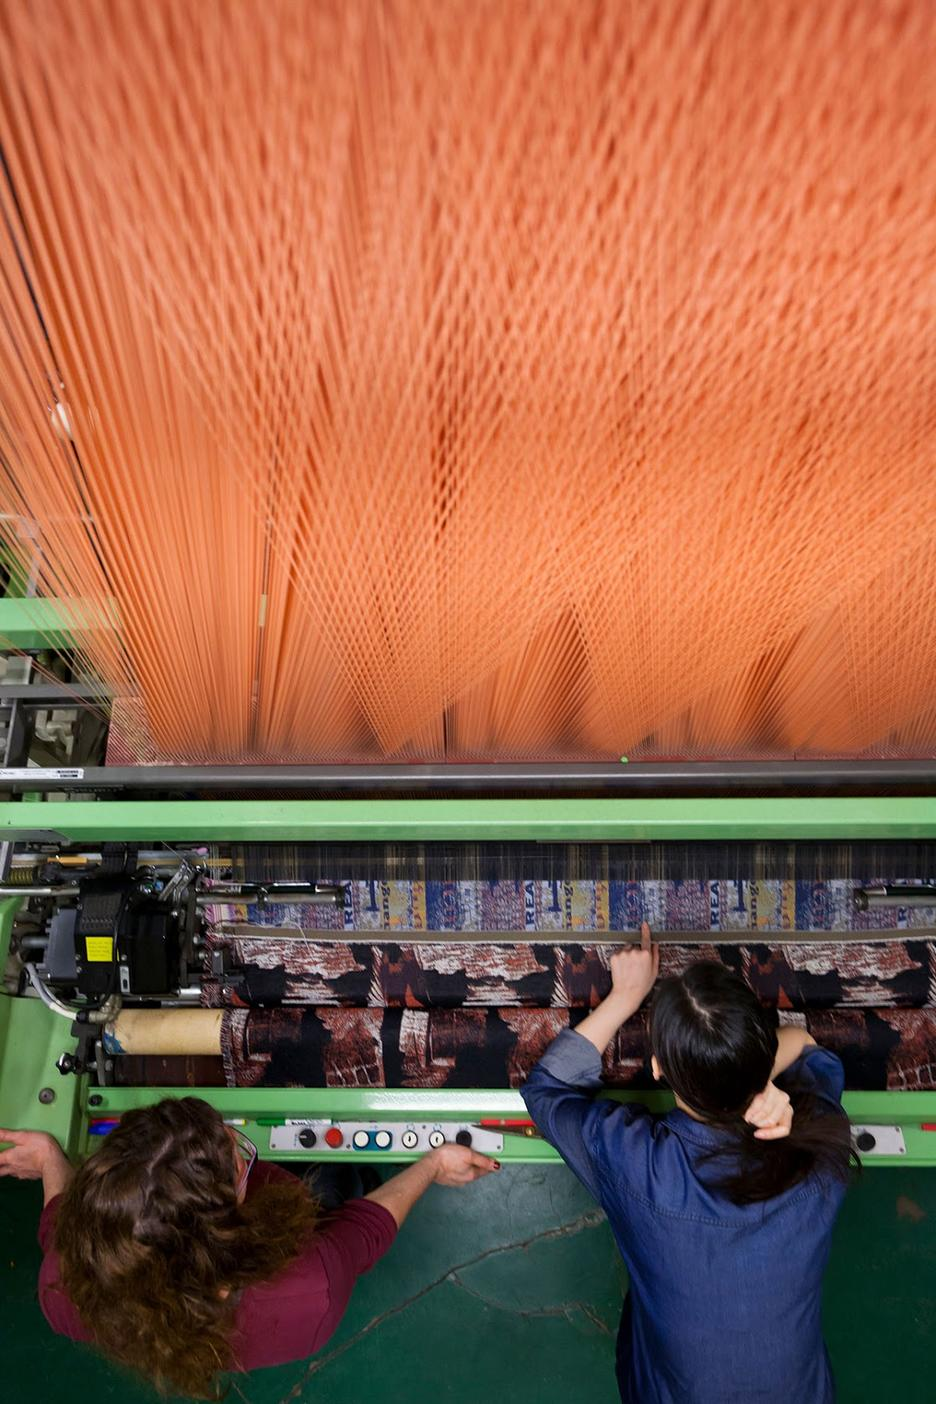 Students using jacquard loom.